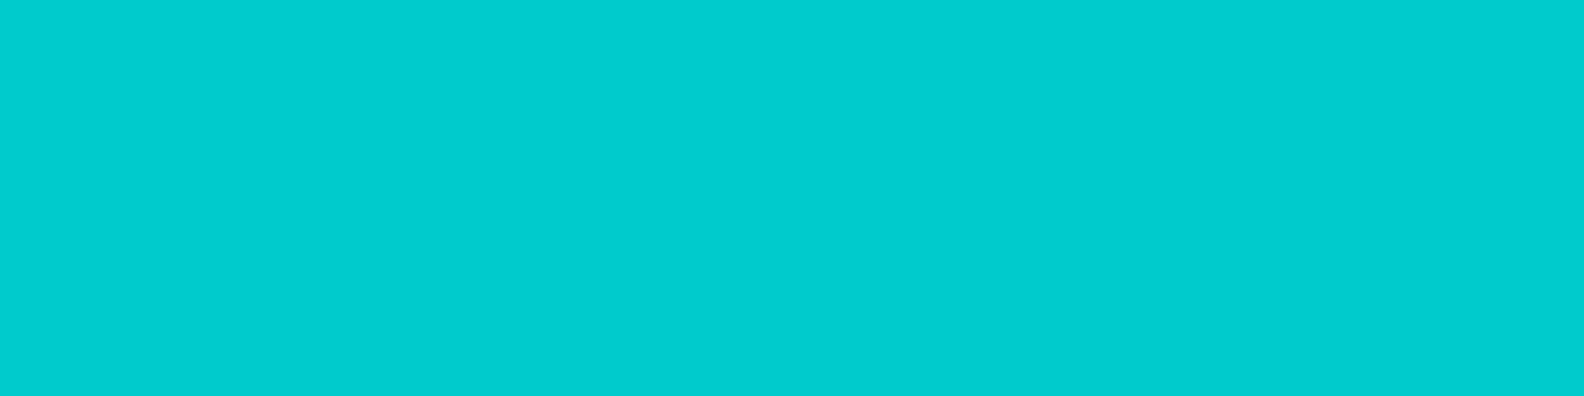 1584x396 Robin Egg Blue Solid Color Background